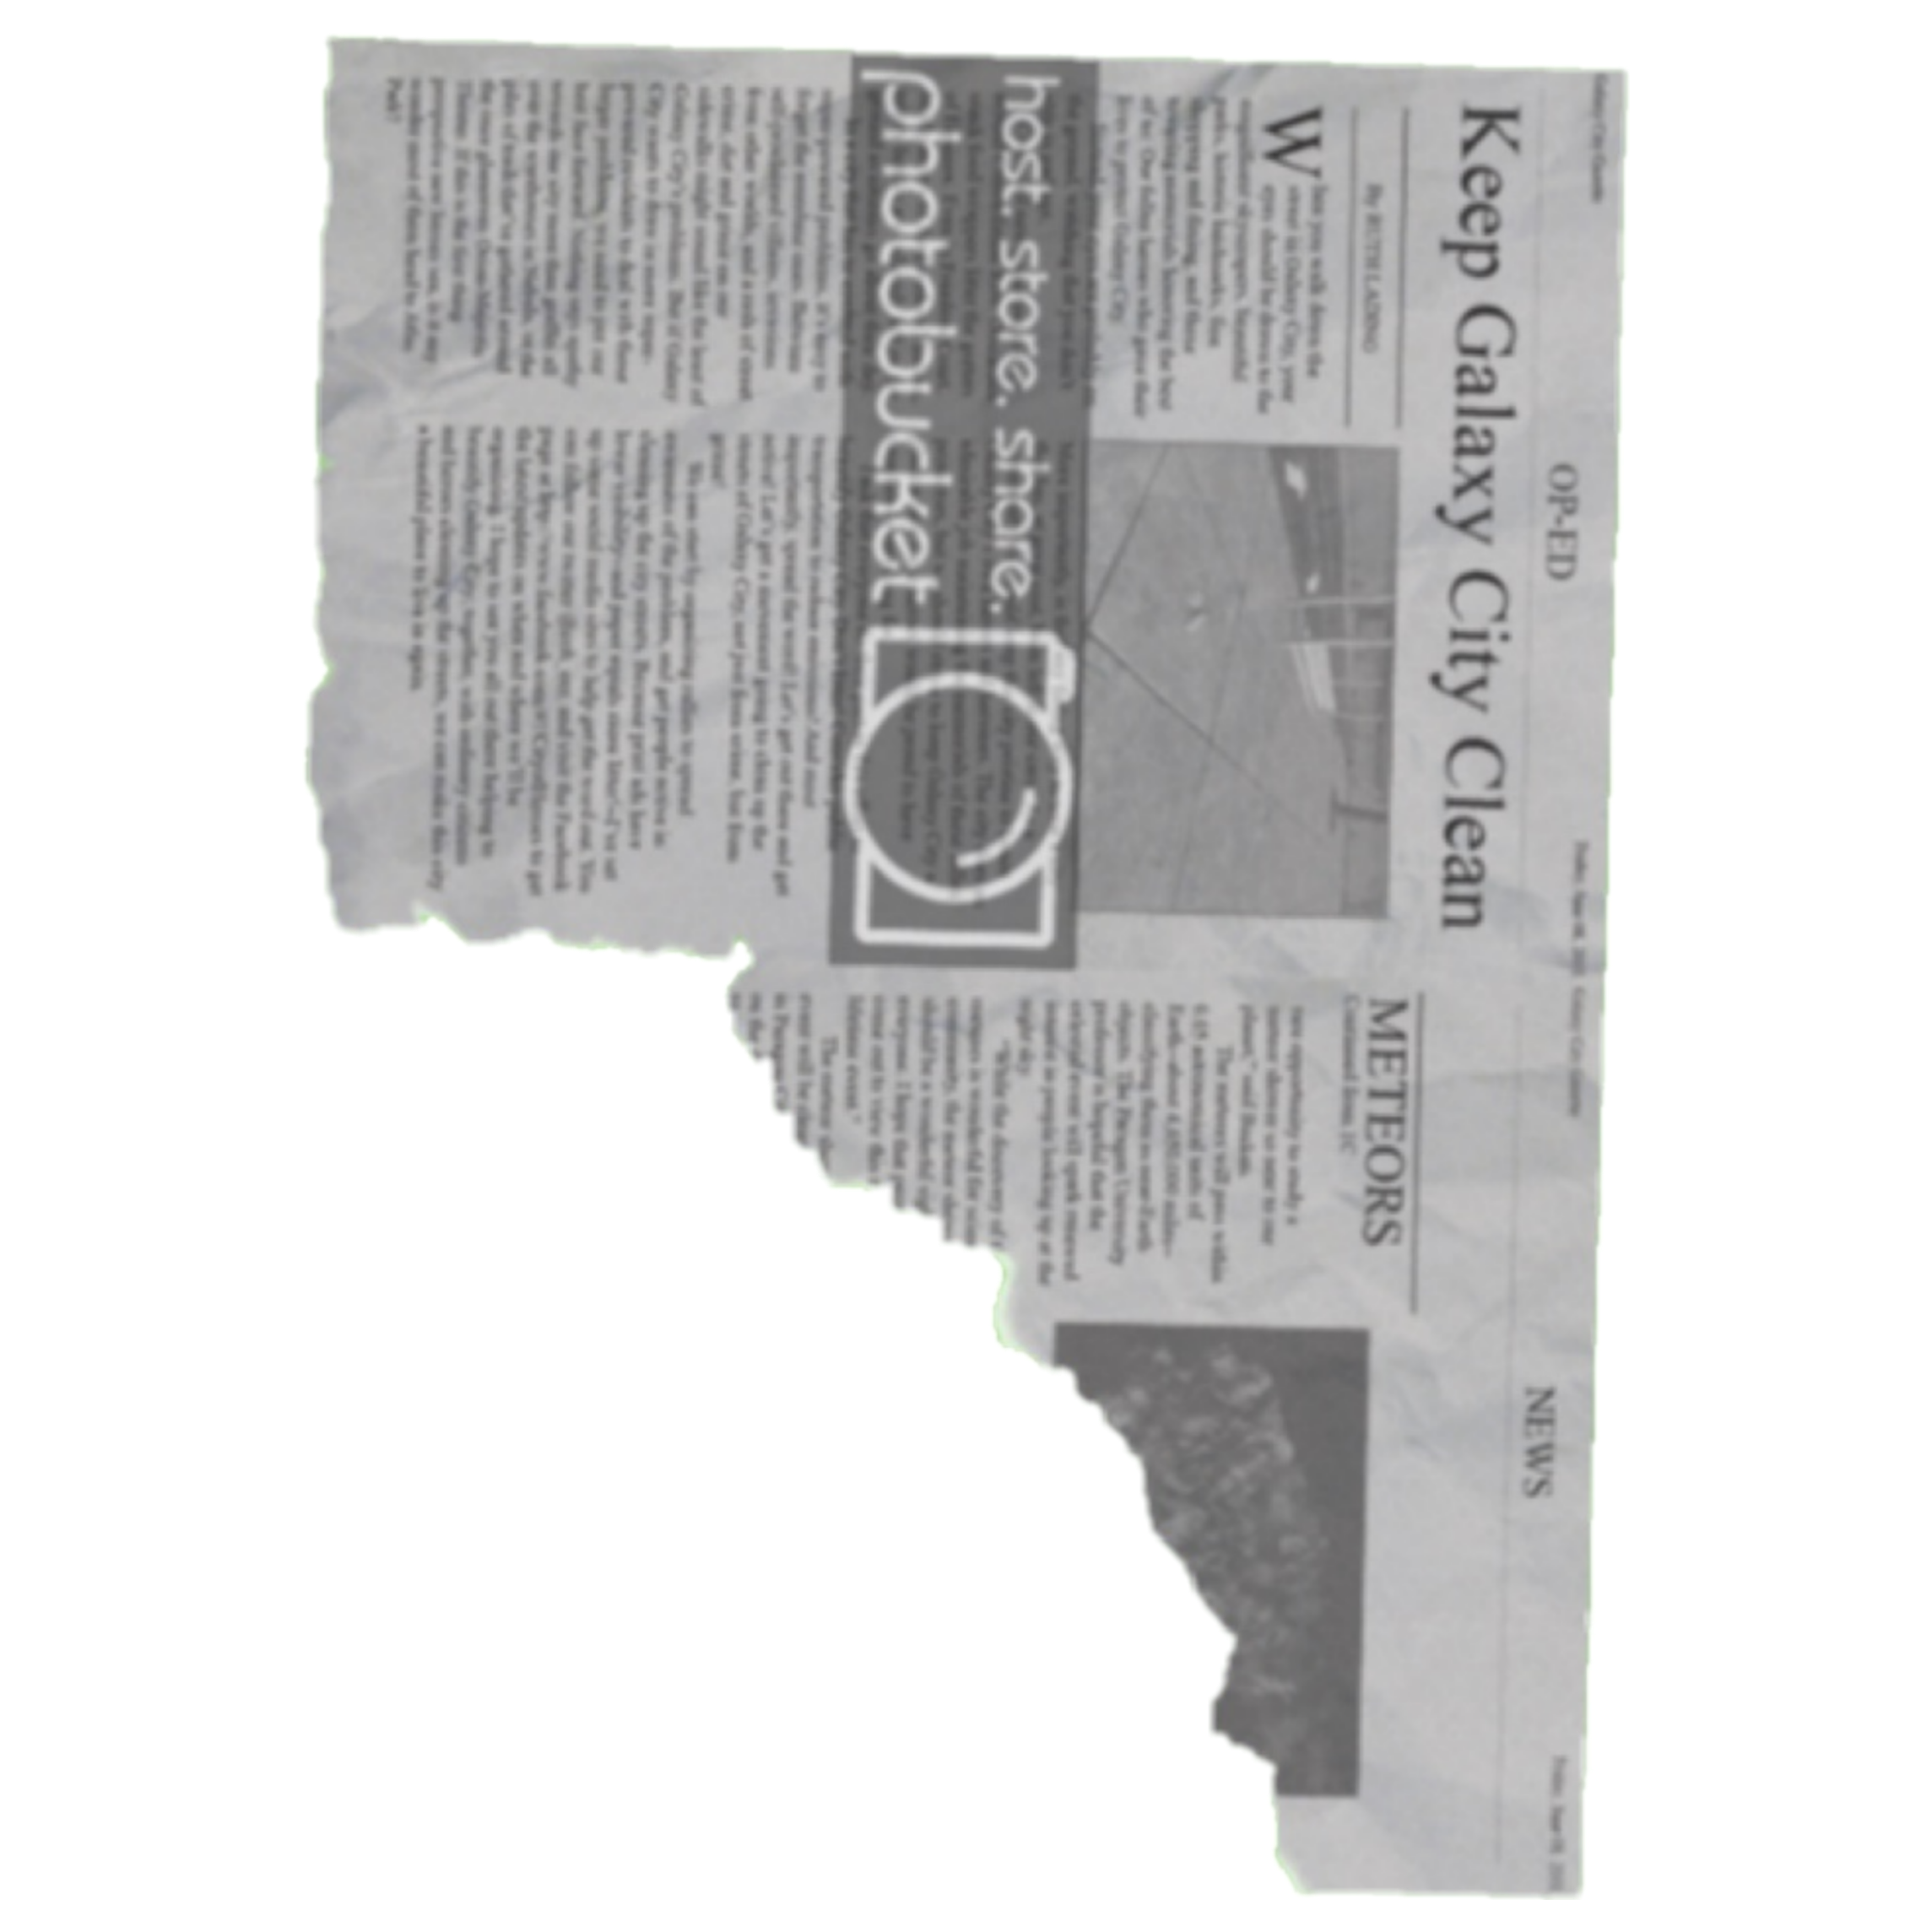 #freetoedit#newspaper #overlay #png #ripped #transparent